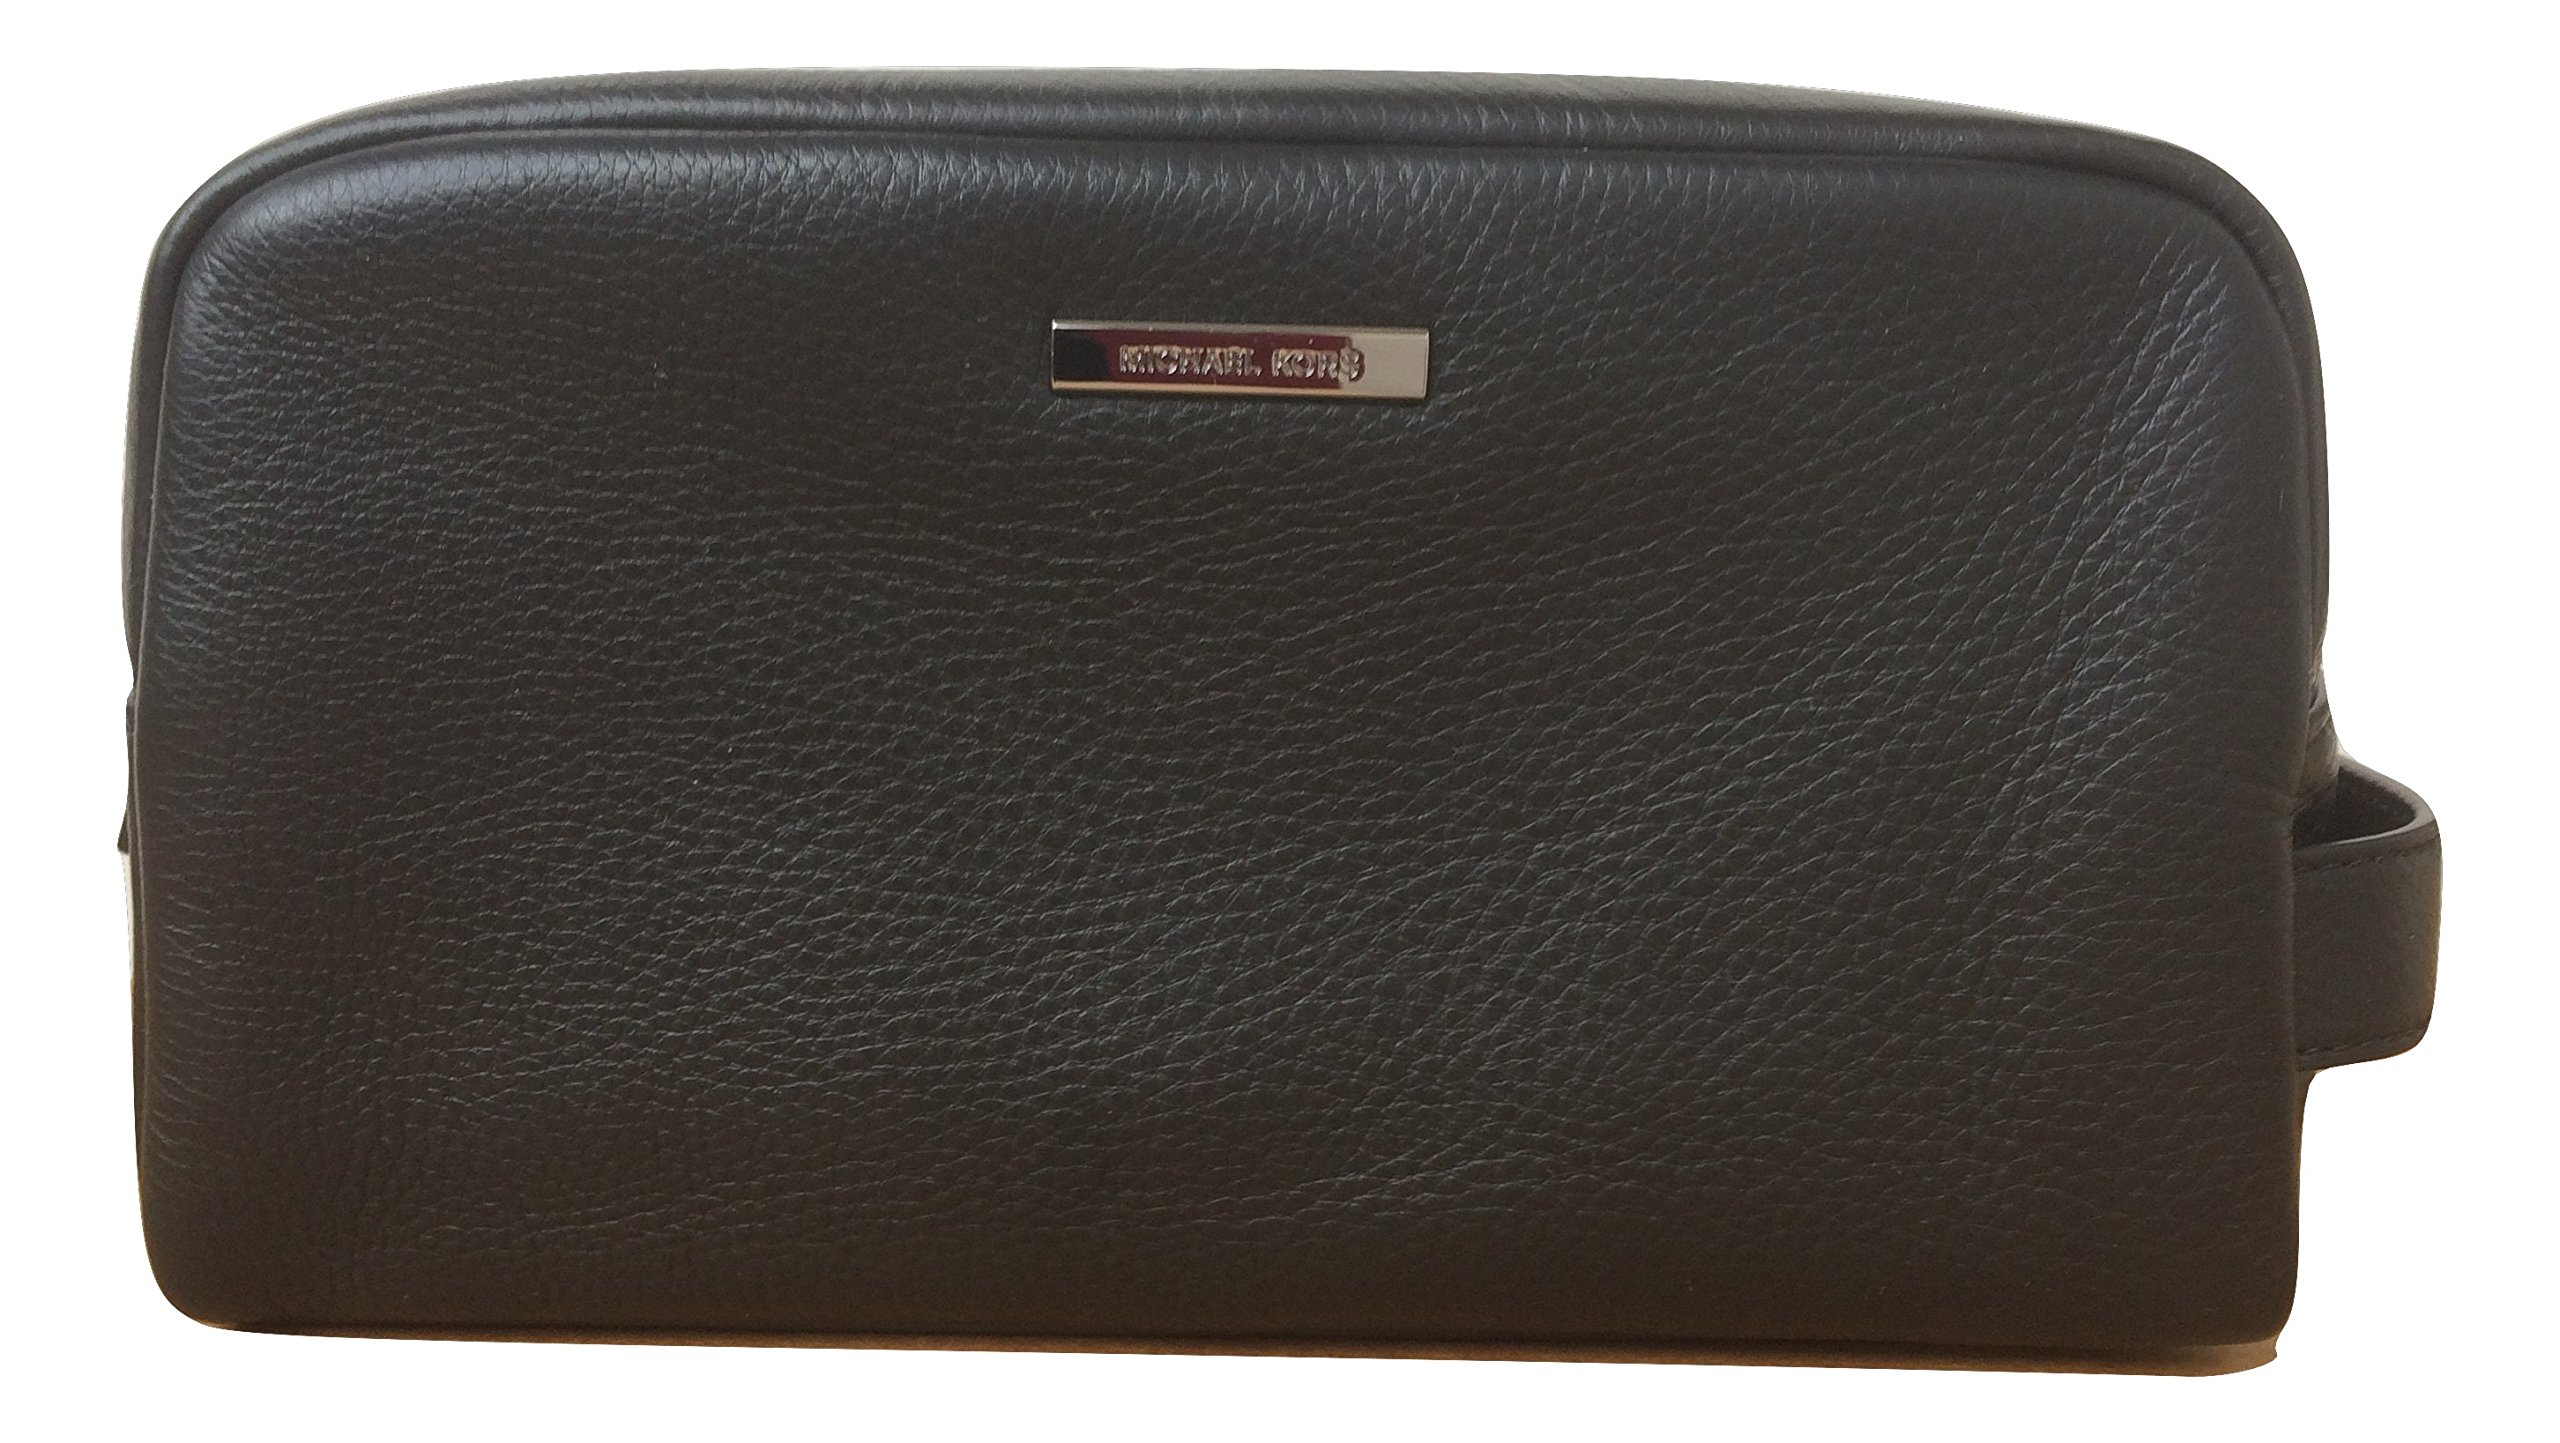 Michael Kors Stephen Leather Toiletry Holder Travel Case (Black) by Michael Kors